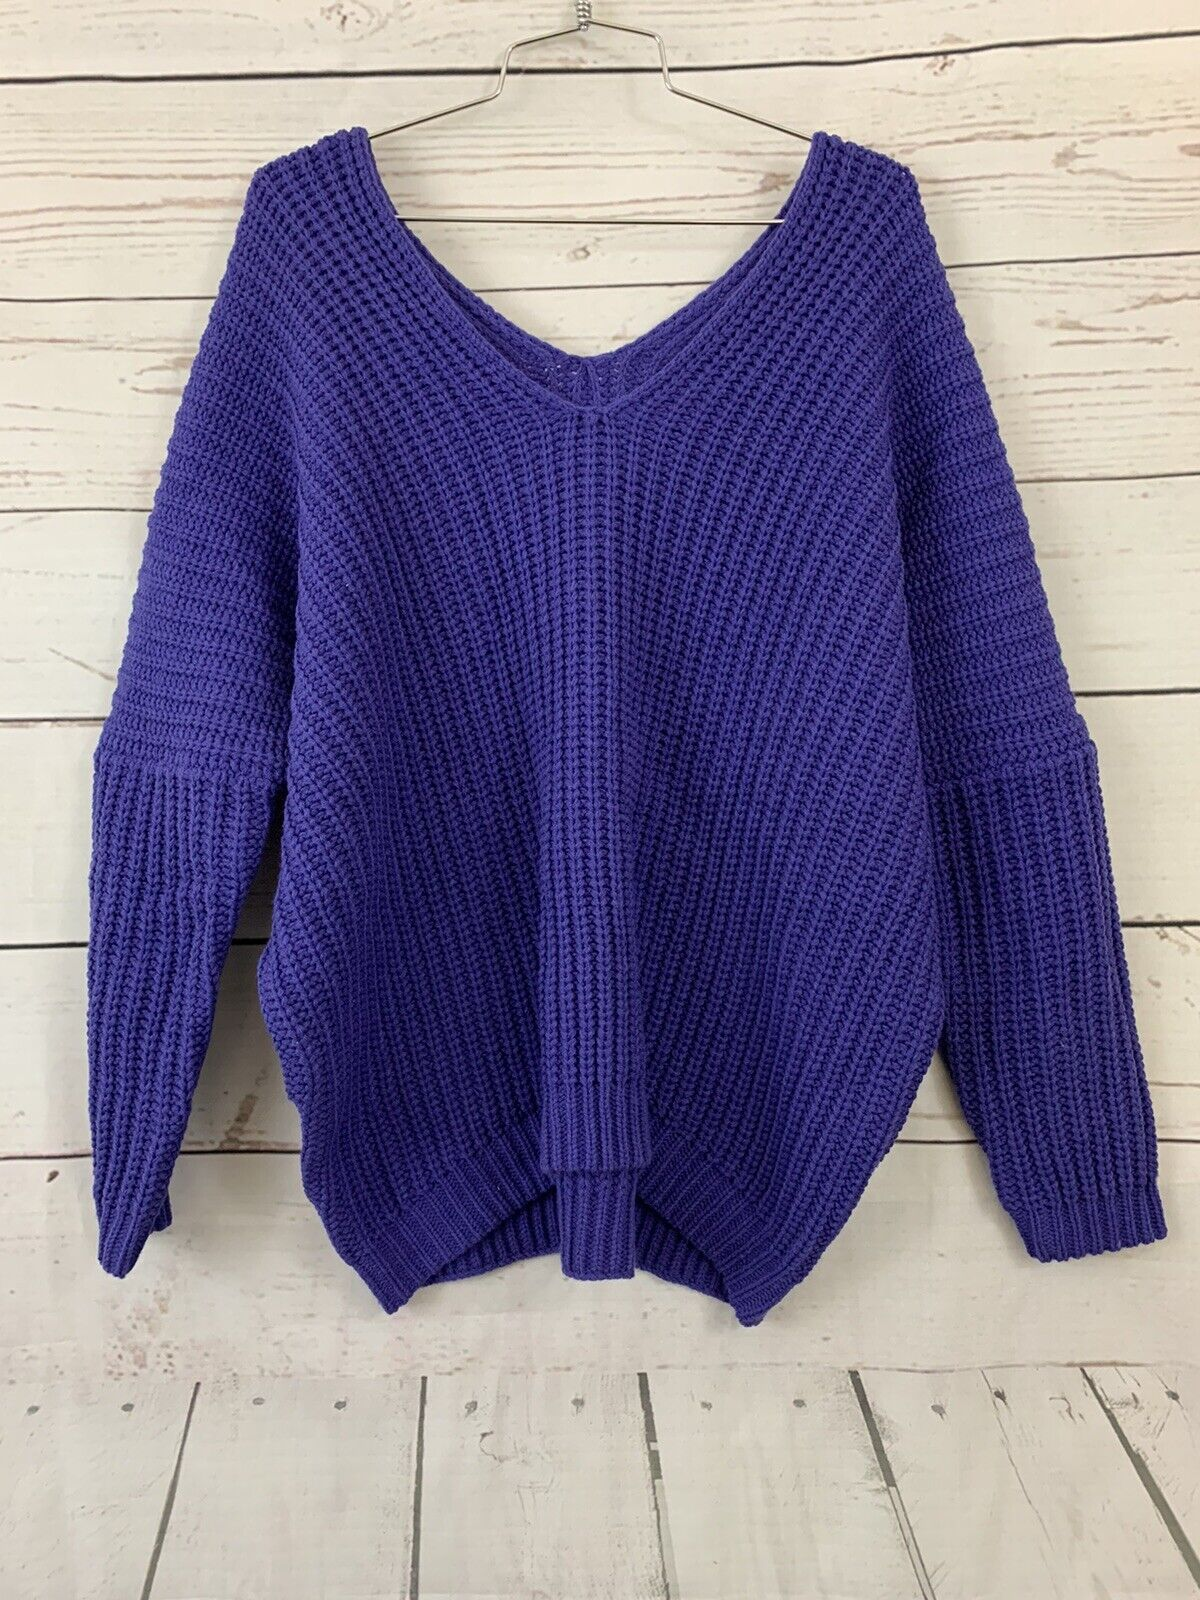 Vintage Strap Up Knitted Top Purple Striped Sweater Top Small